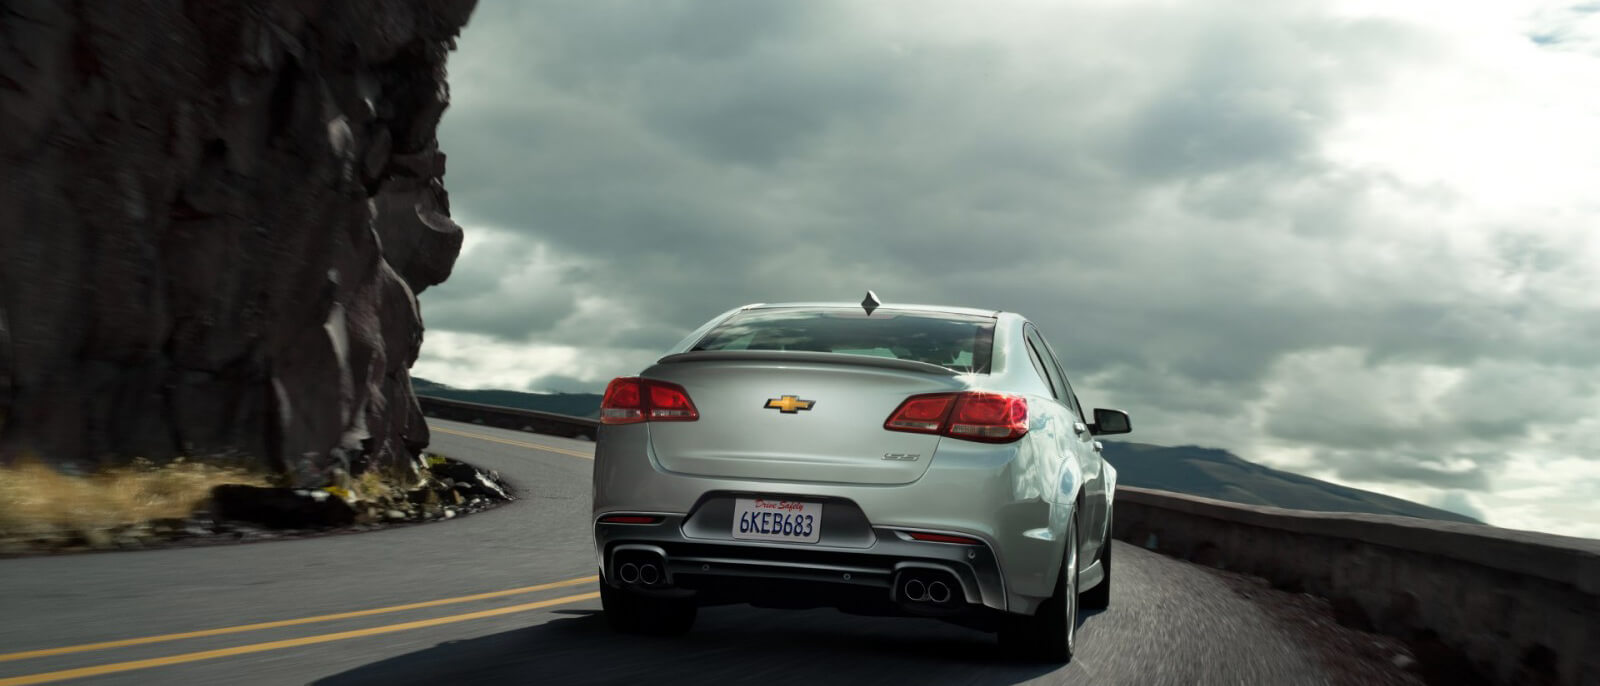 2016 Chevrolet SS rear view